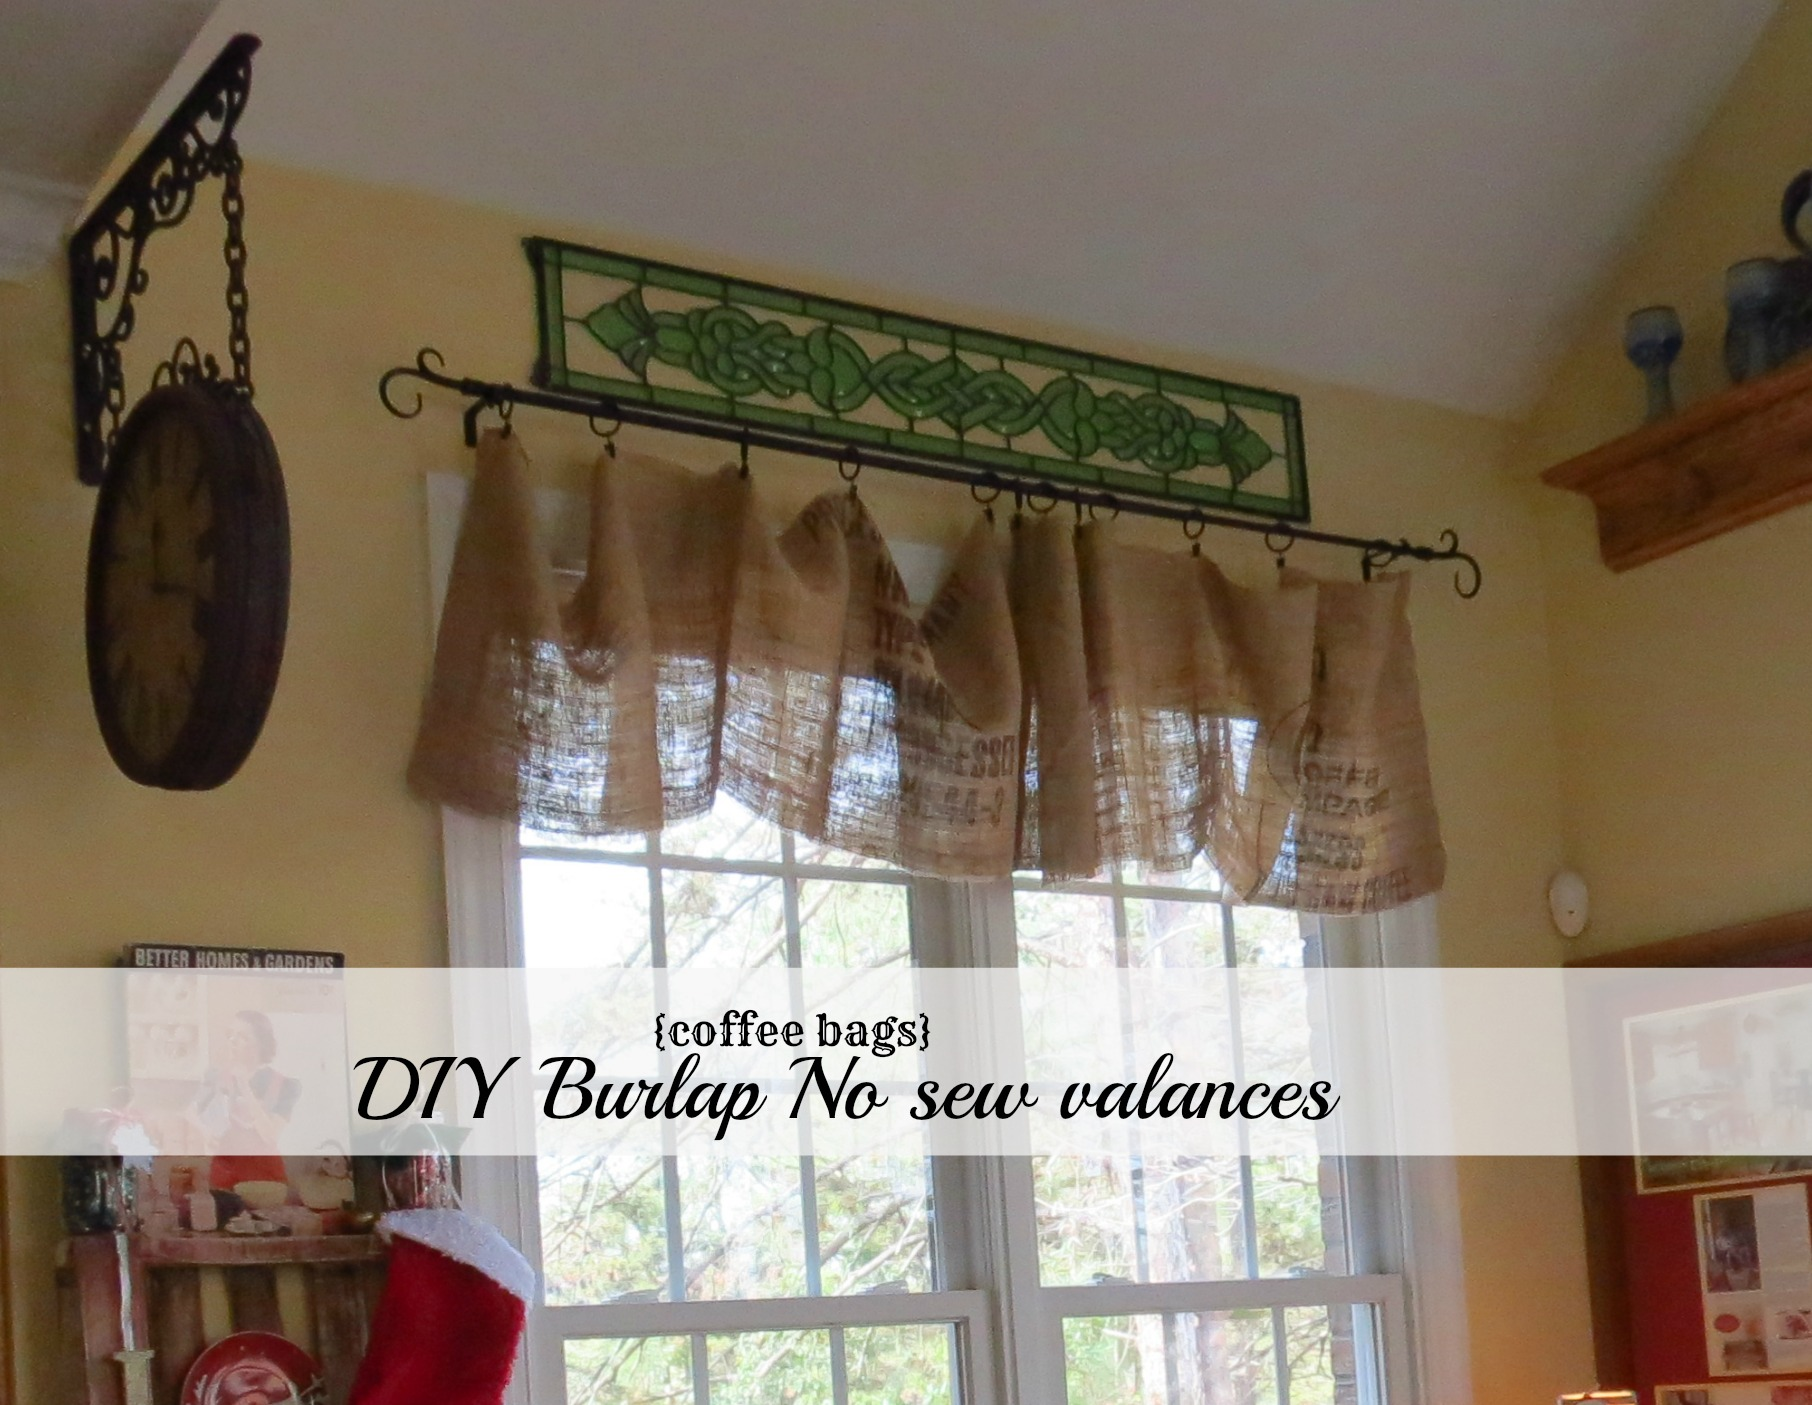 Diy no sew burlap kitchen valances made from coffee bags Window treatment ideas to make